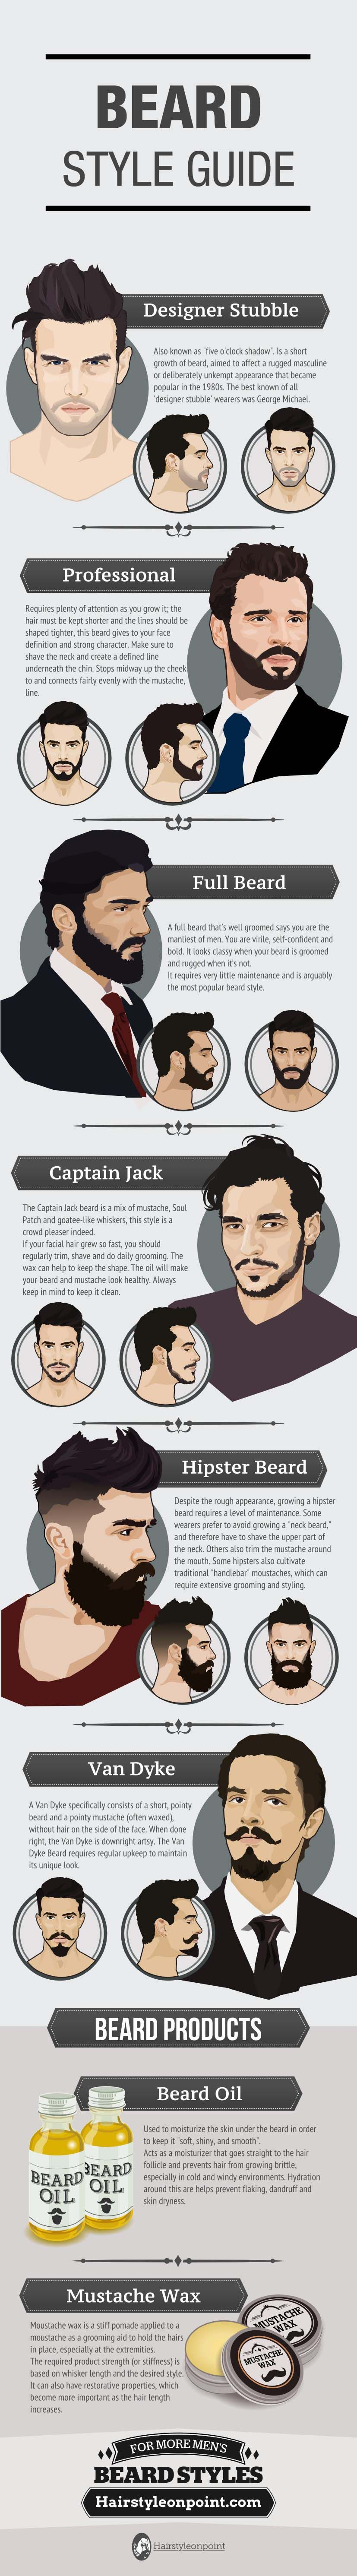 Everything You Need To Know About Growing & Styling Your Beard #beardfashion